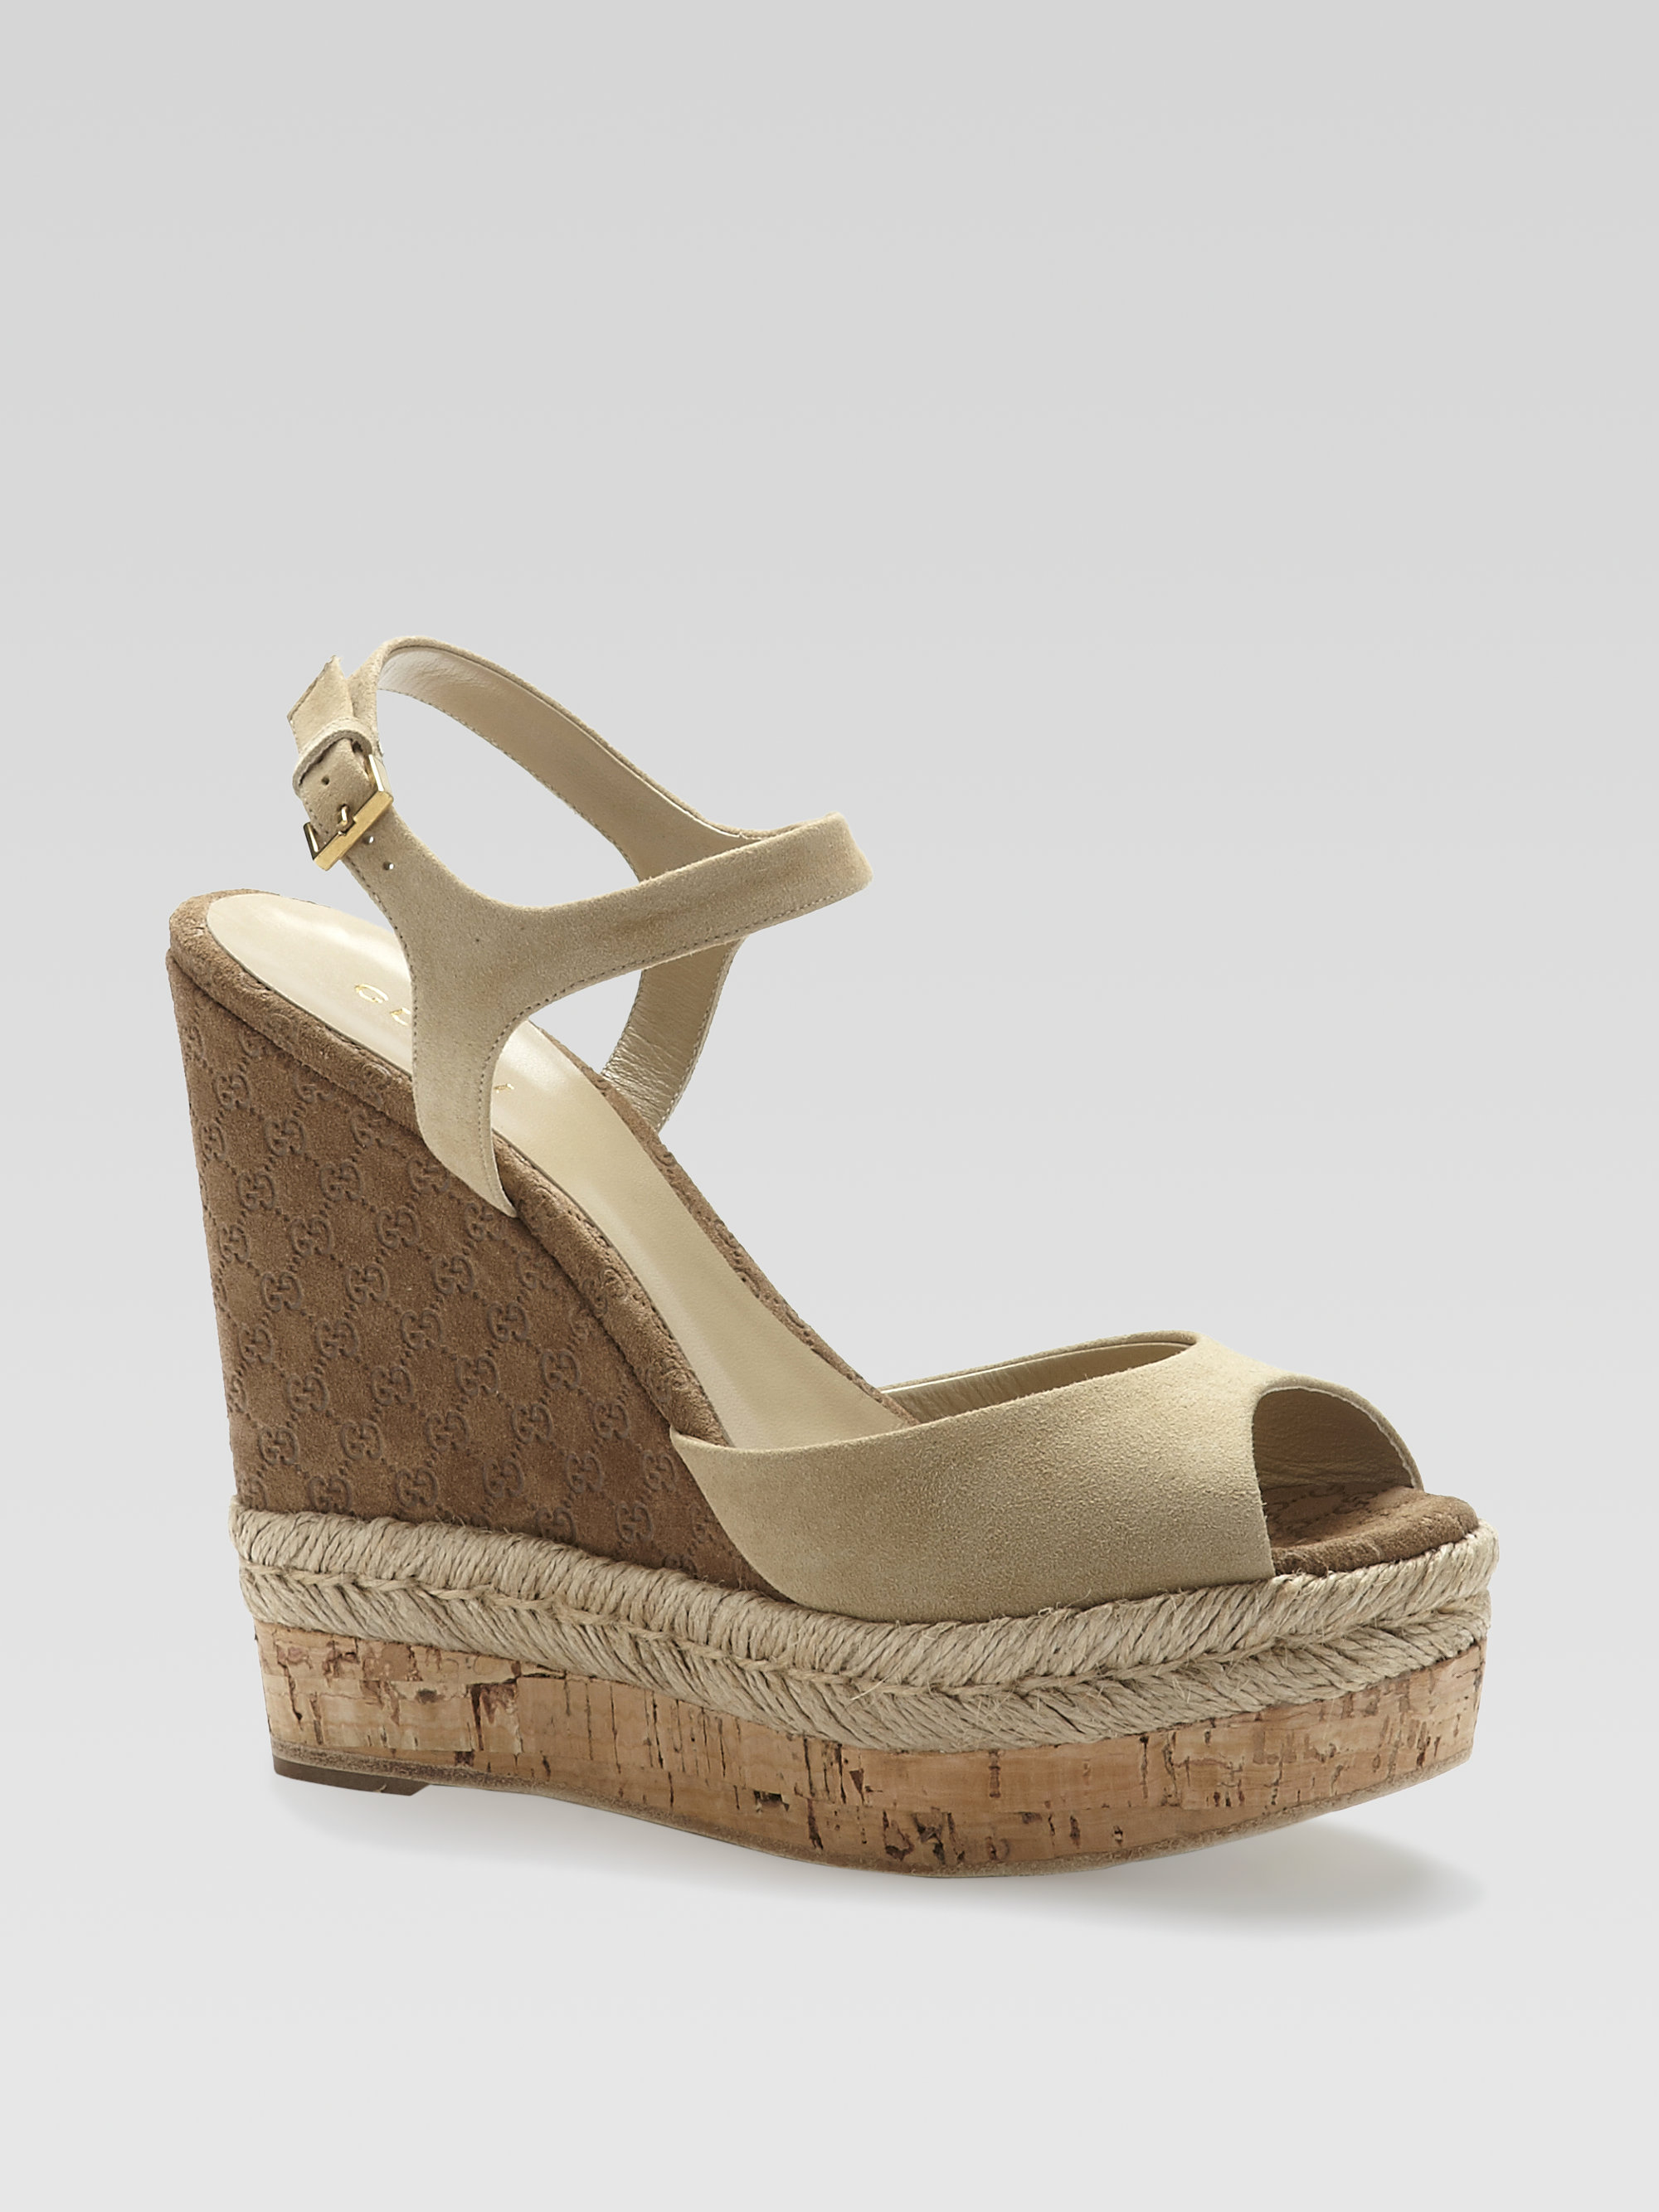 101aa9470d93 Lyst - Gucci Hollie Suede Cork Wedge Sandals in Natural